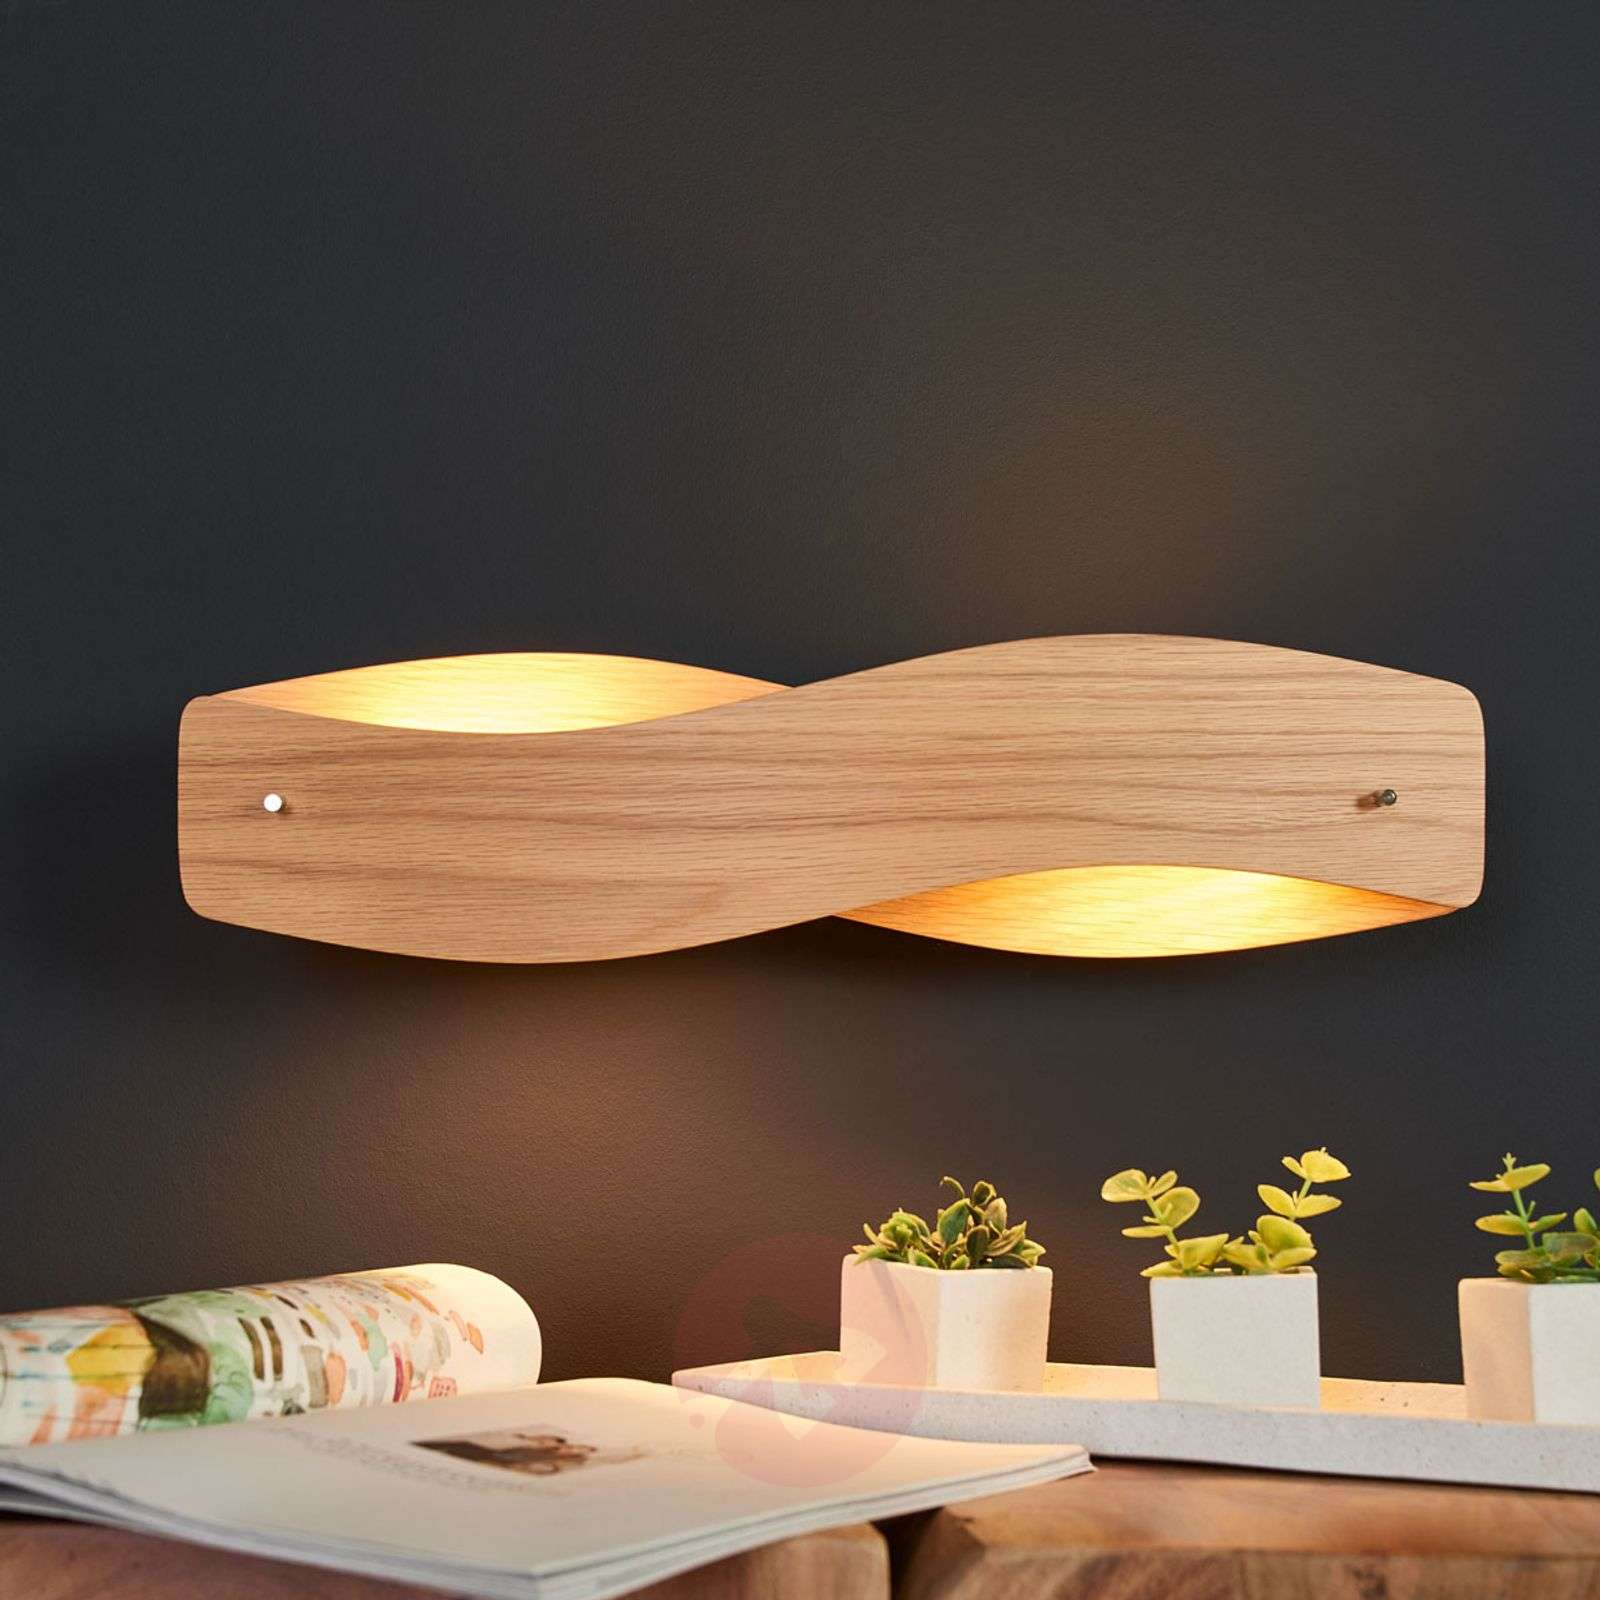 Lian wood wall light with dimmable LEDs-6722425-01